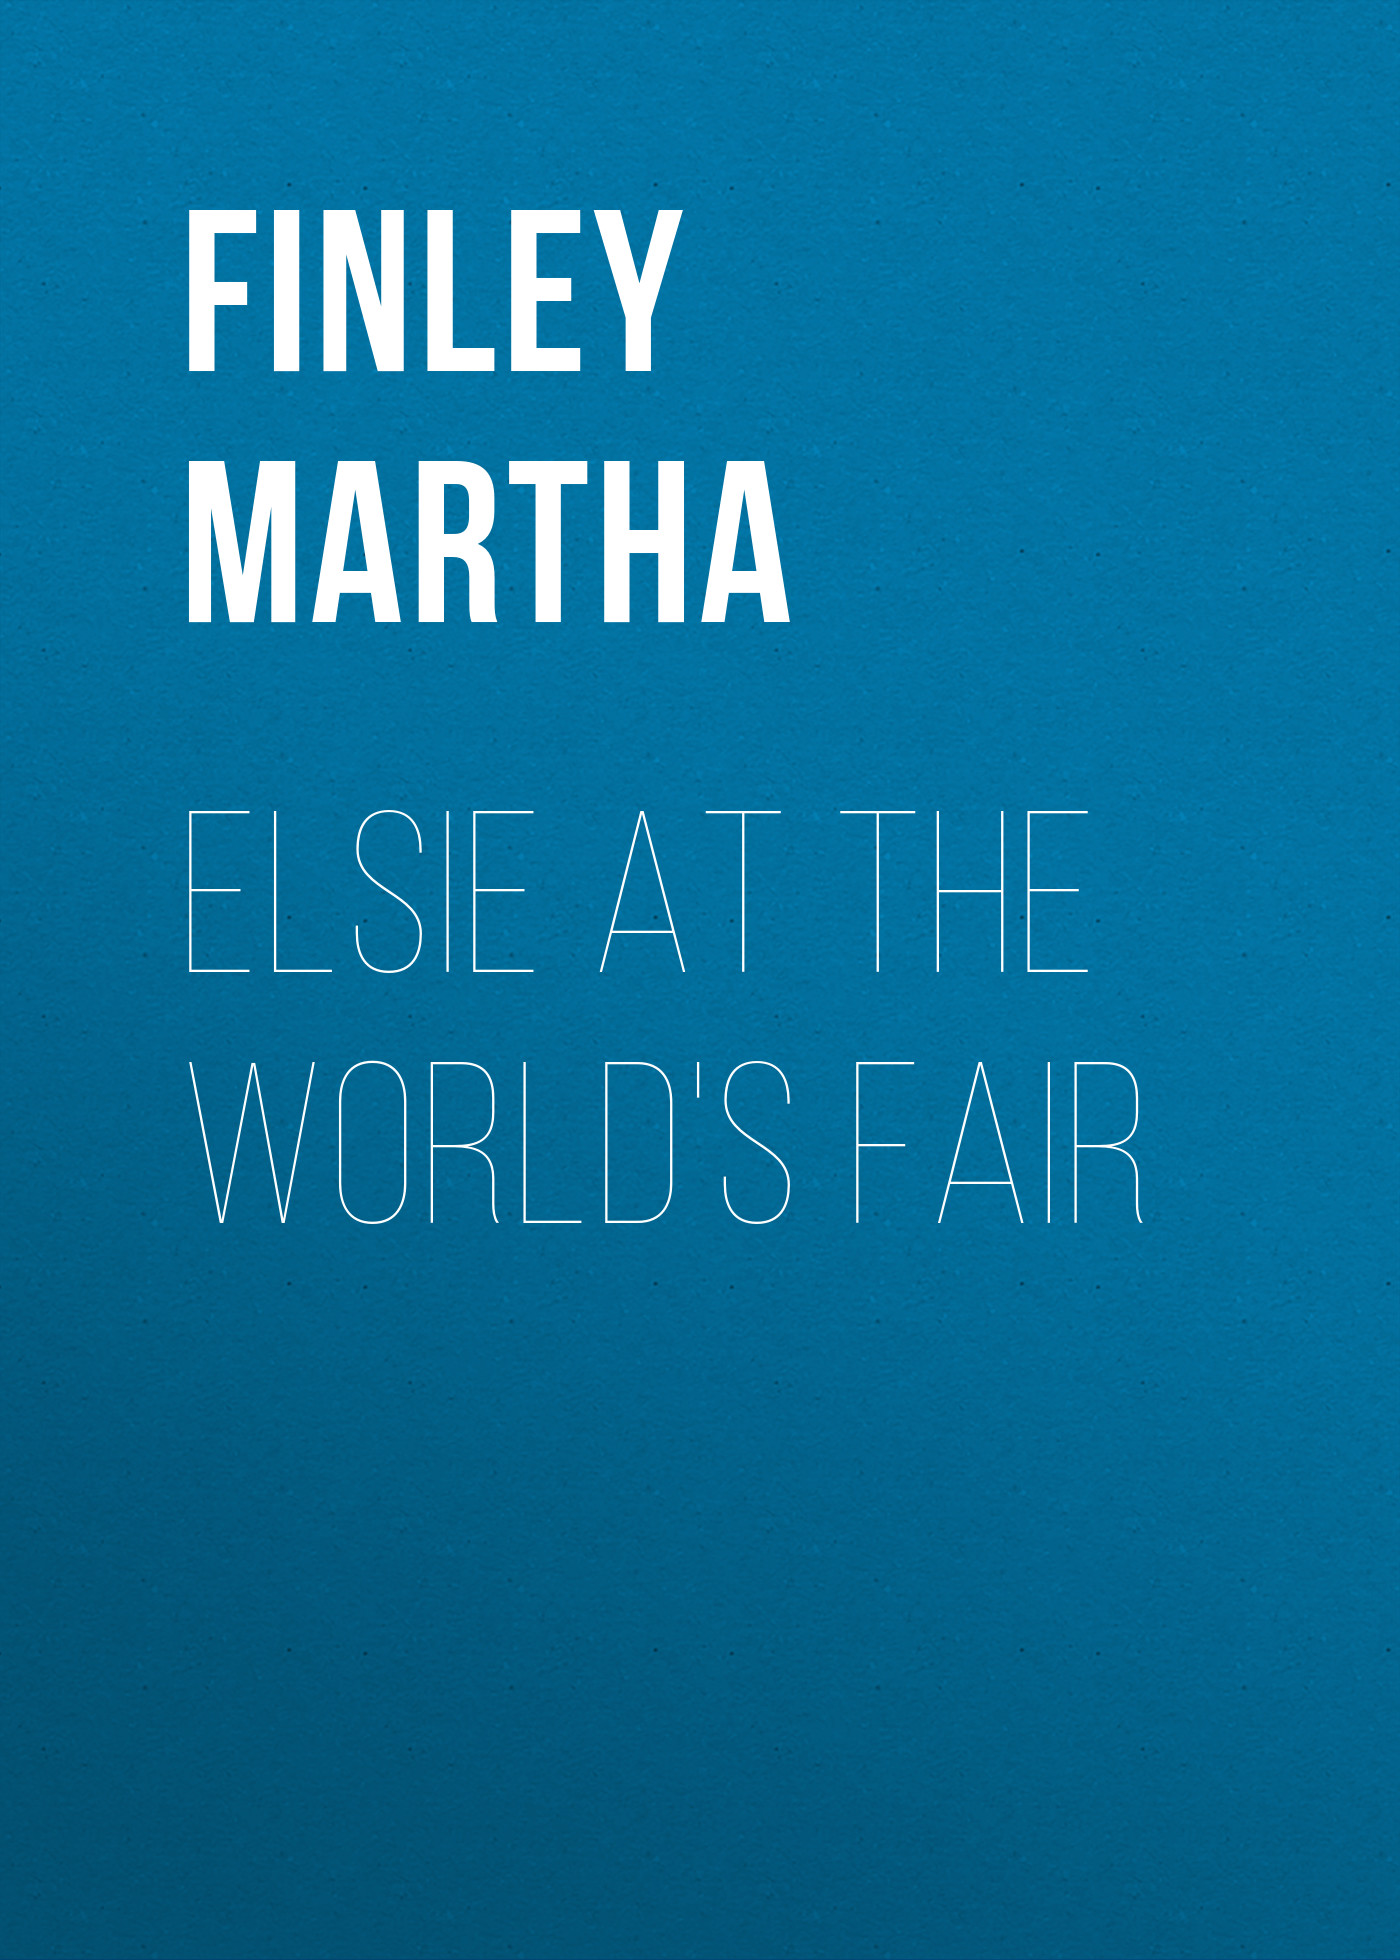 Finley Martha Elsie at the World's Fair